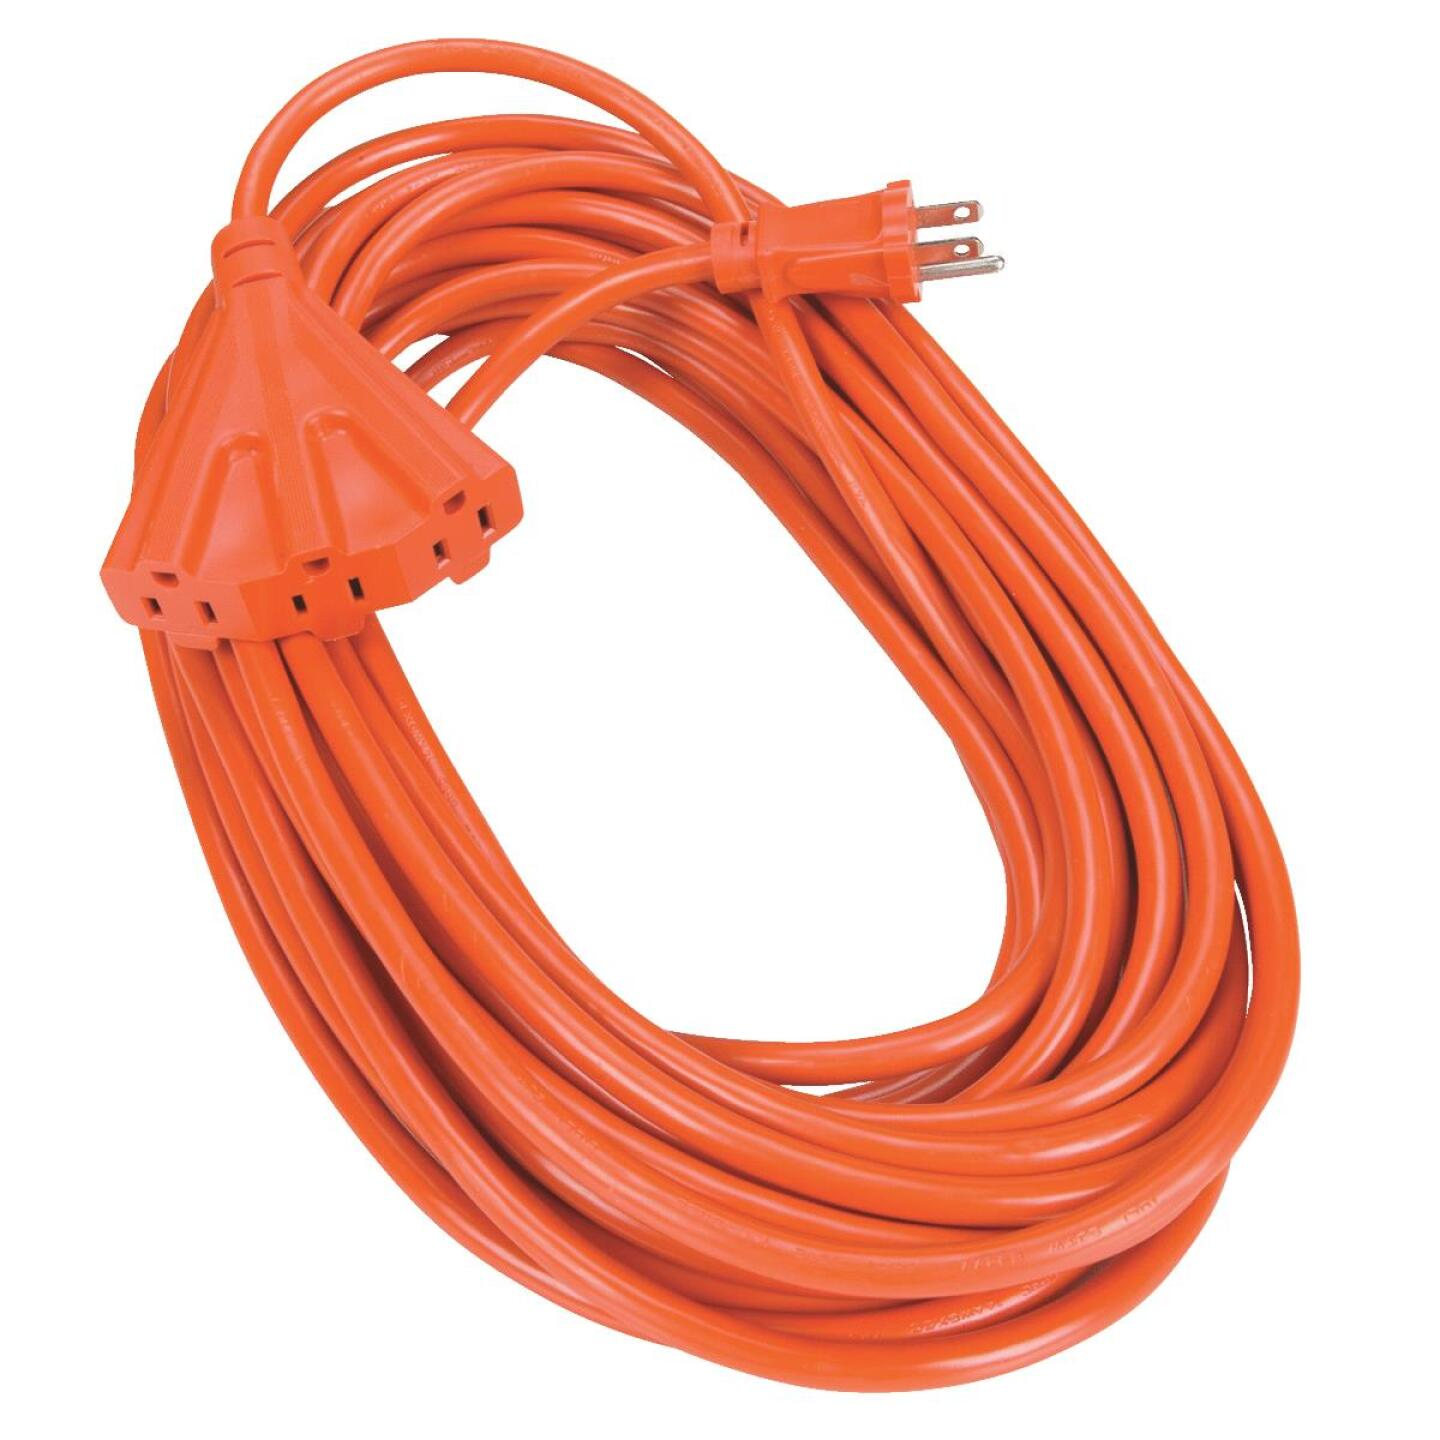 Do it 50 Ft. 14/3 Extension Cord with Powerblock Image 1